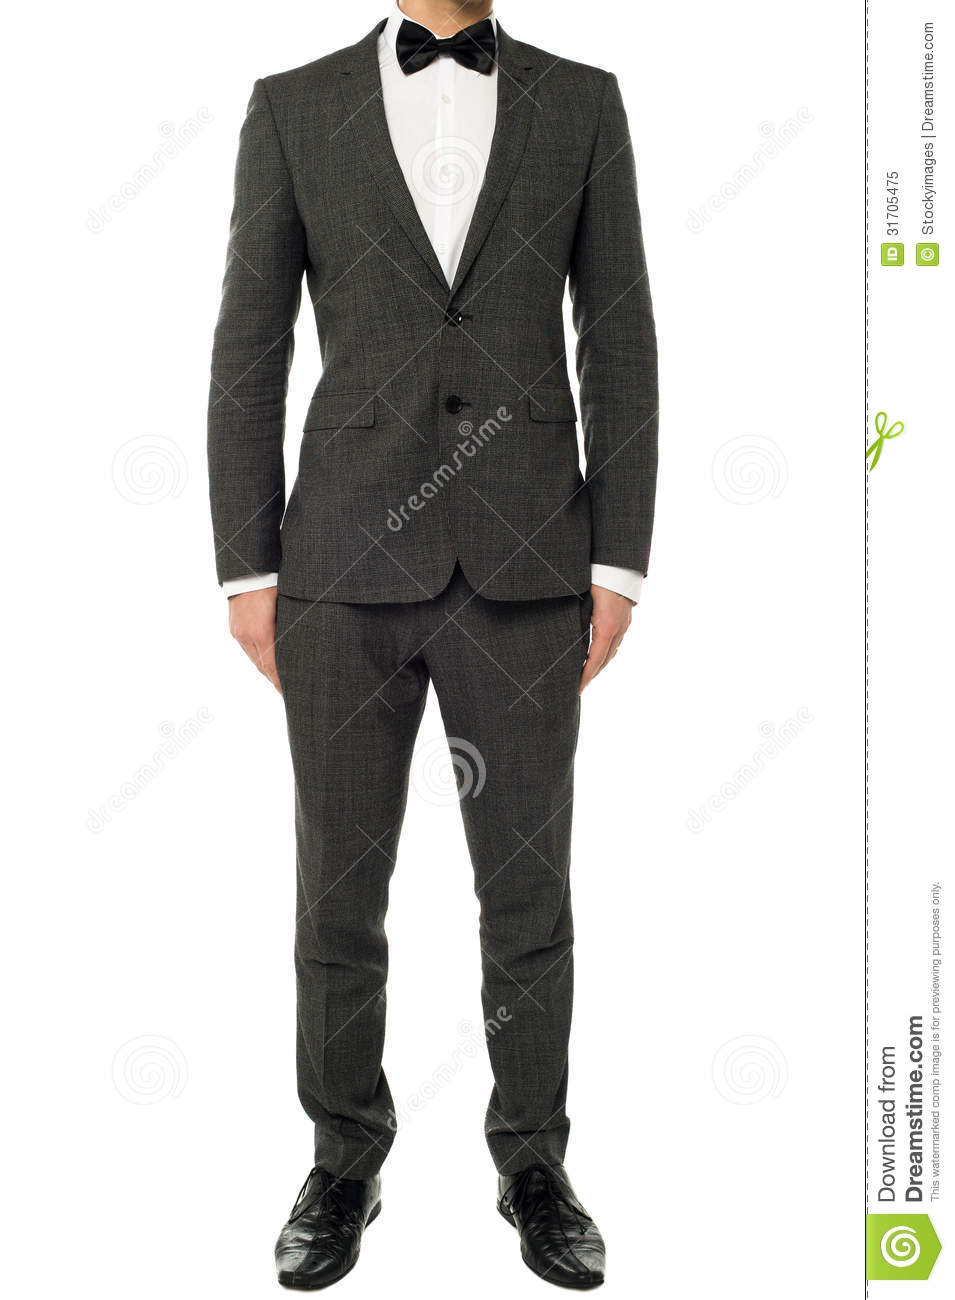 Cropped Image Of A Man In Tuxedo Royalty Free Stock Photo   Image